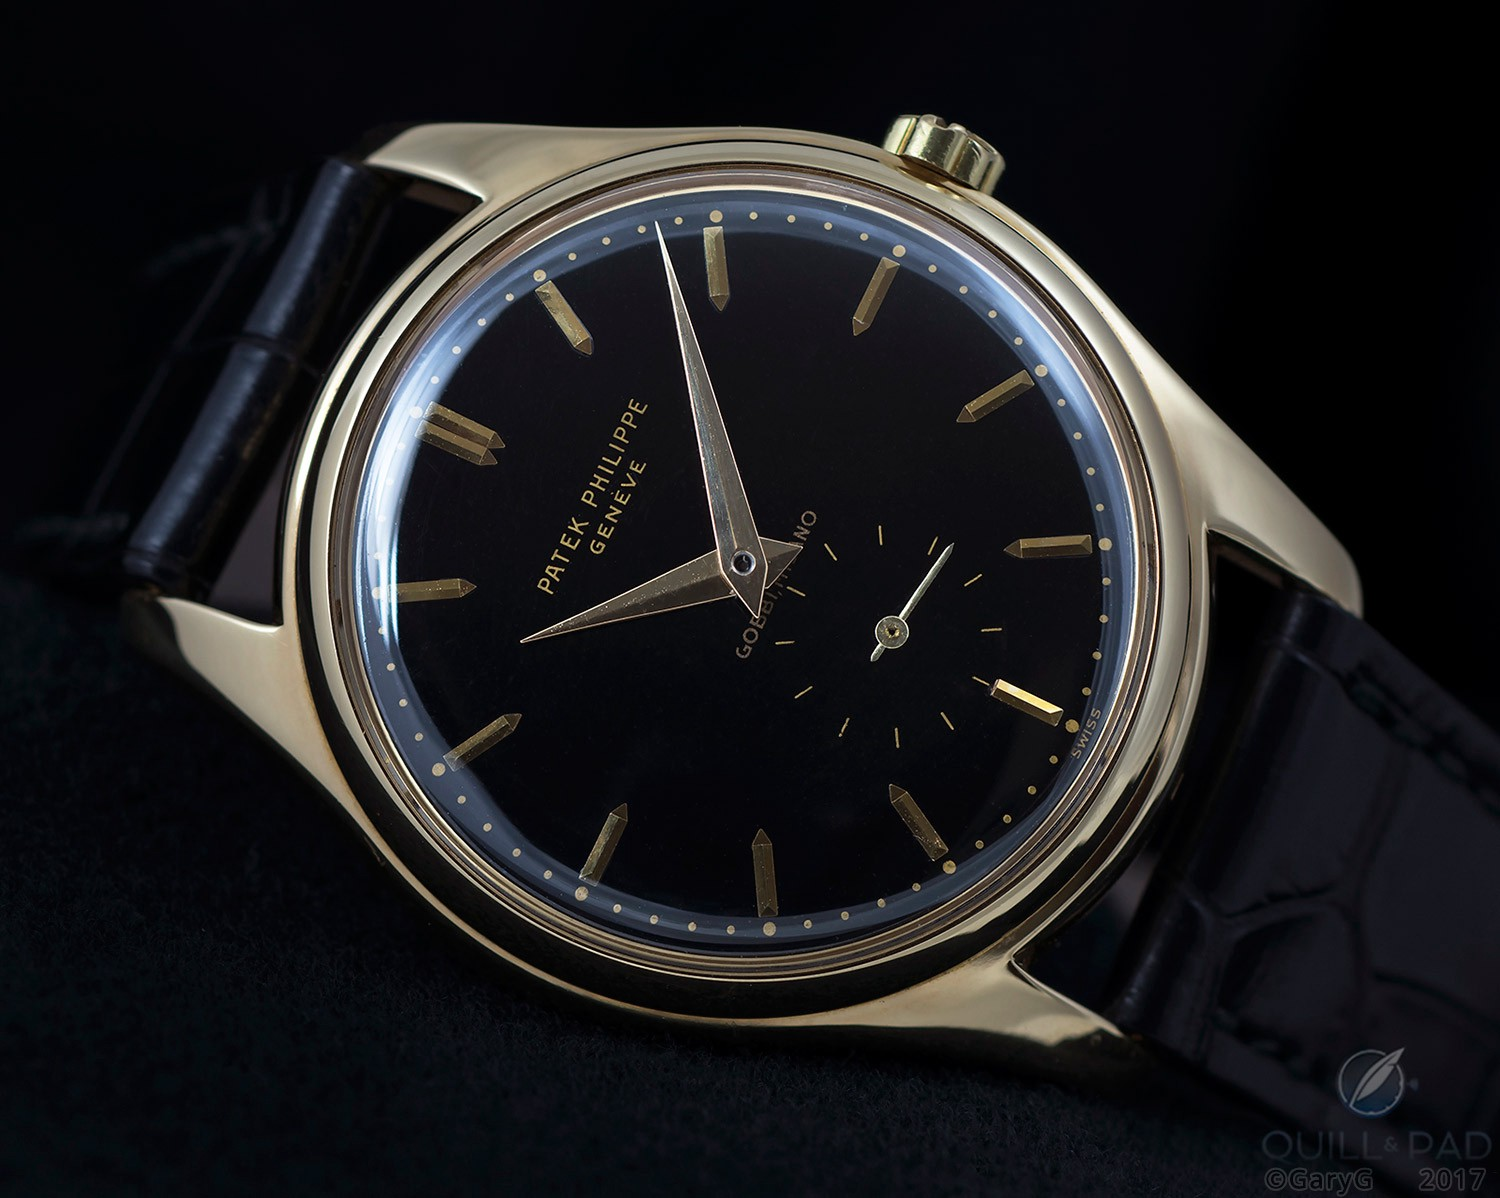 Foundational watch: Patek Philippe Reference 2526